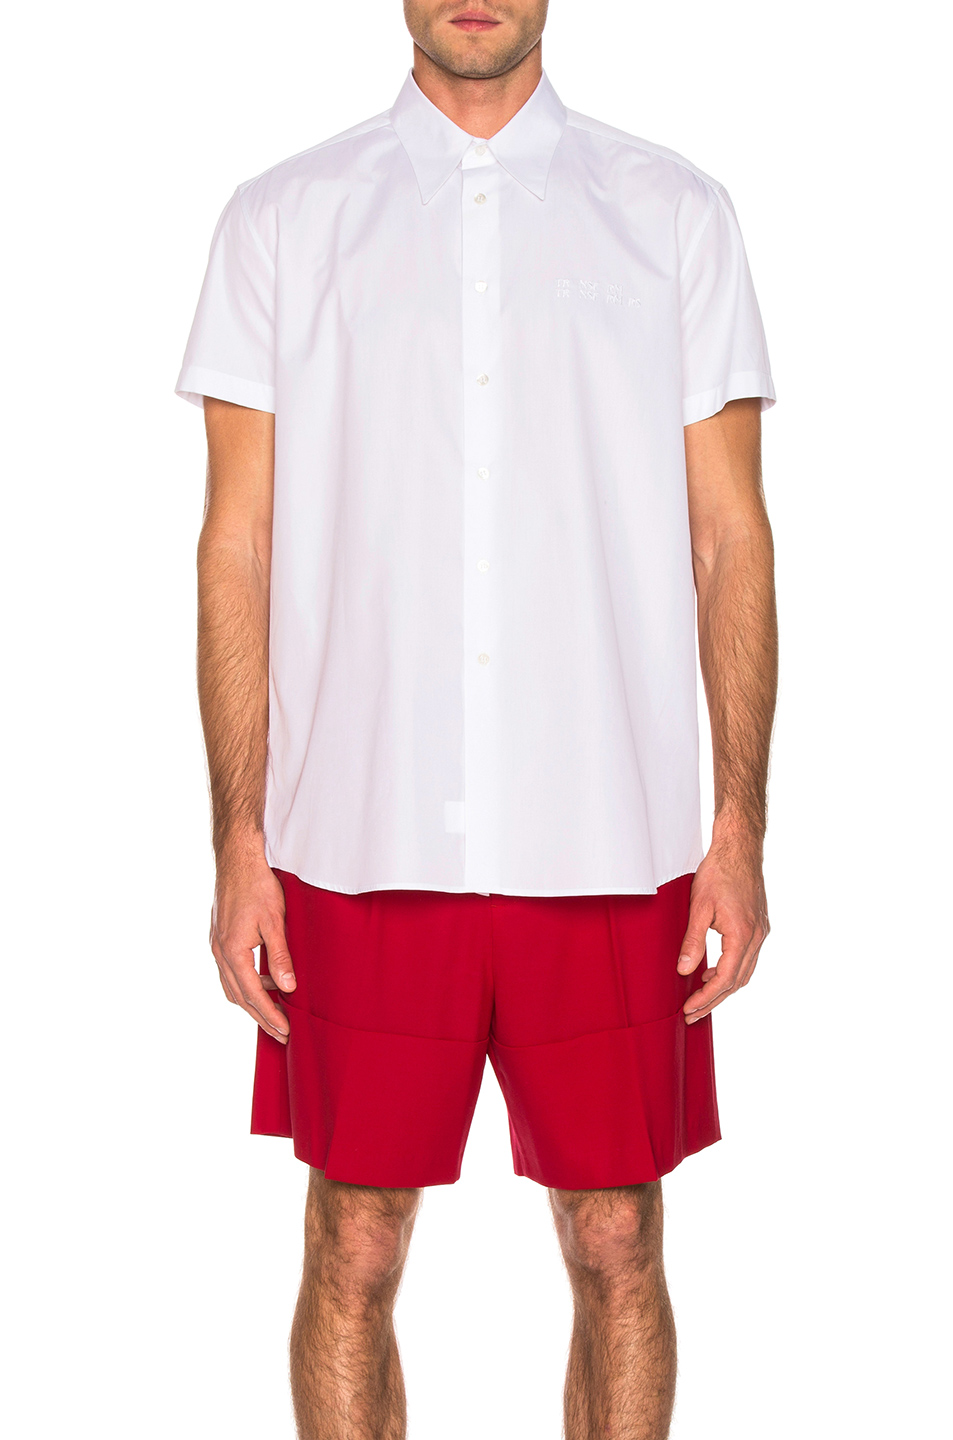 Raf Simons Embroidered Shirt In White